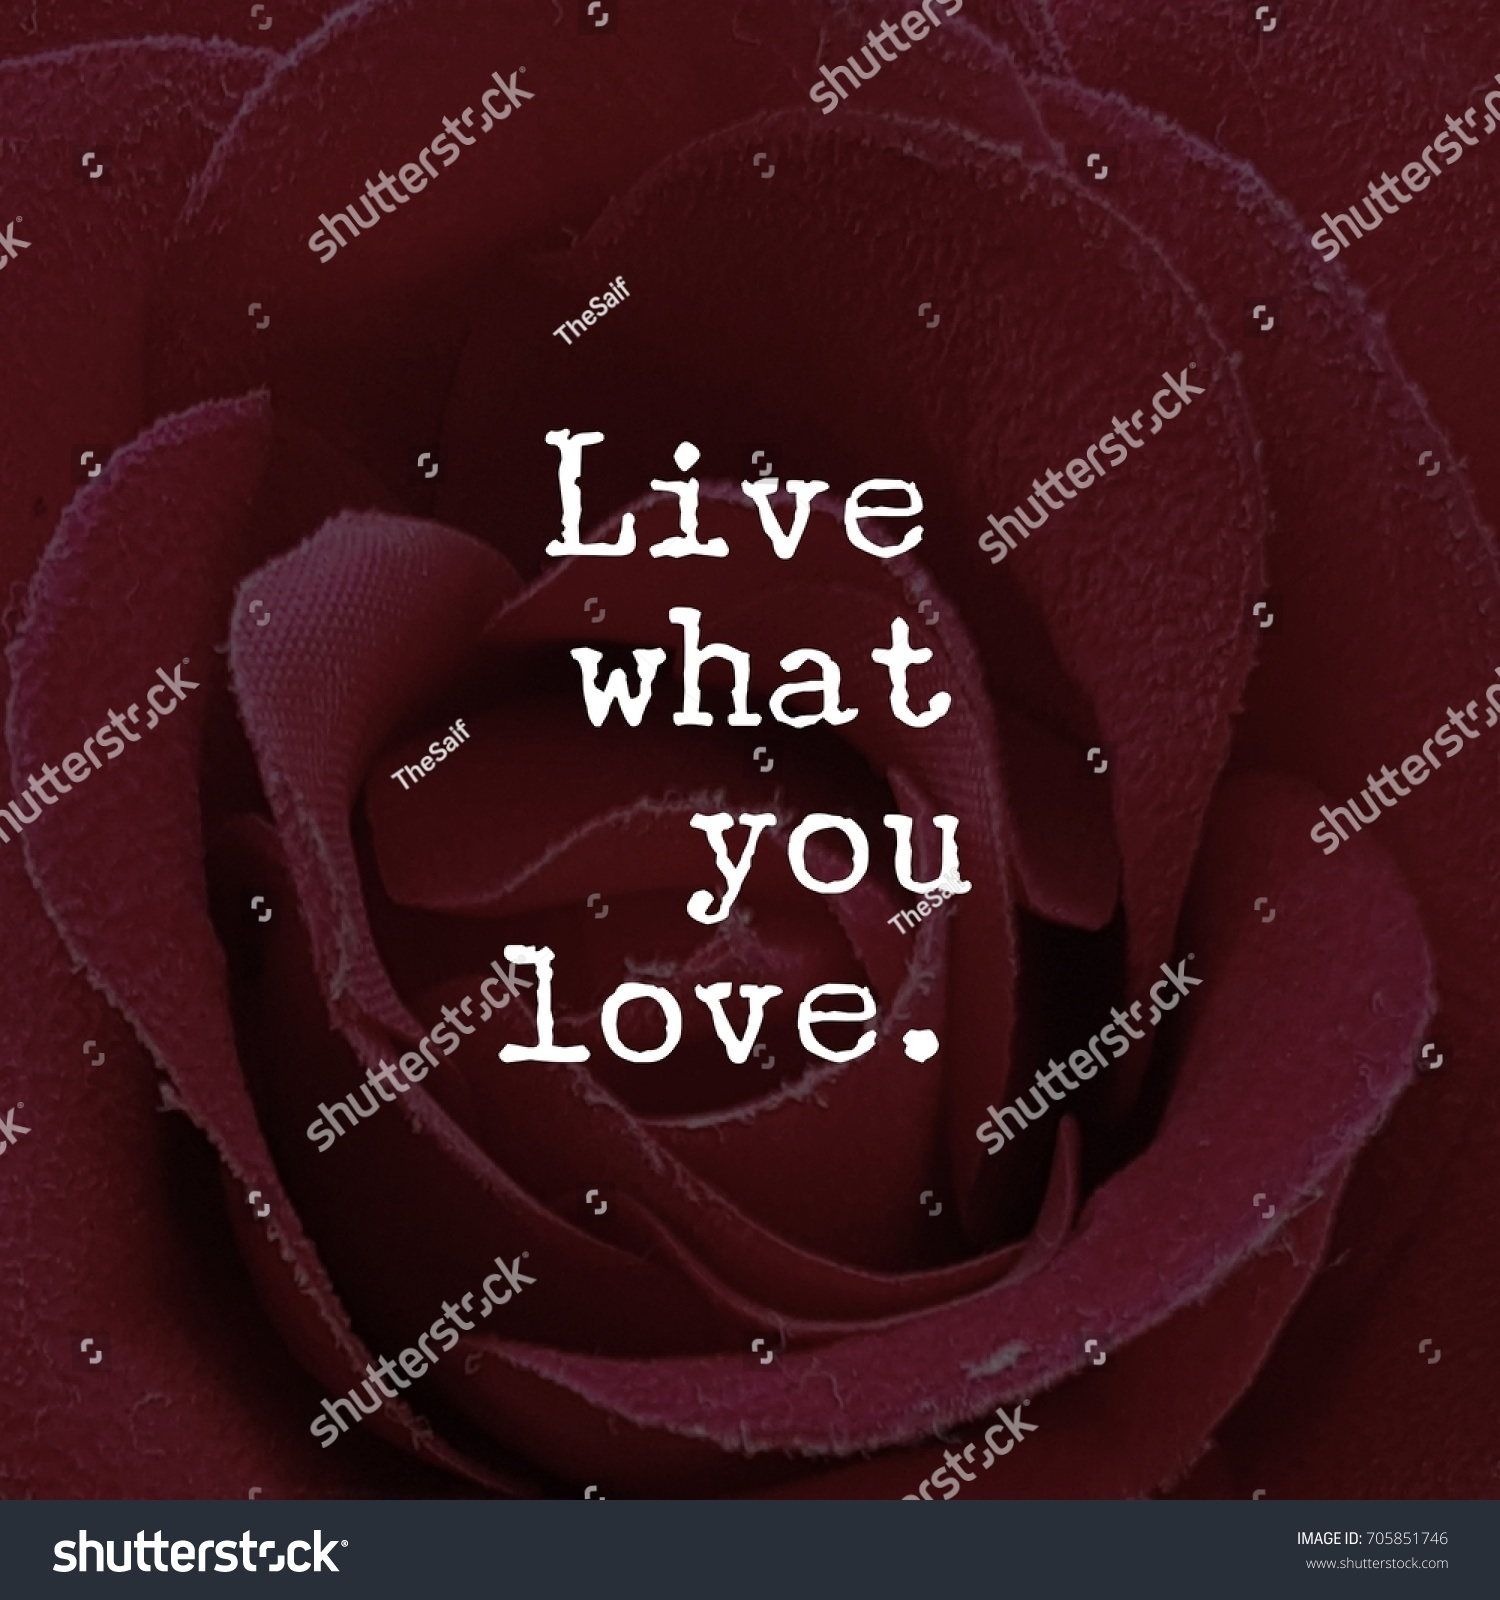 Inspiration Love Quotes Live What You Love Quote Inspirational Stock Photo 705851746